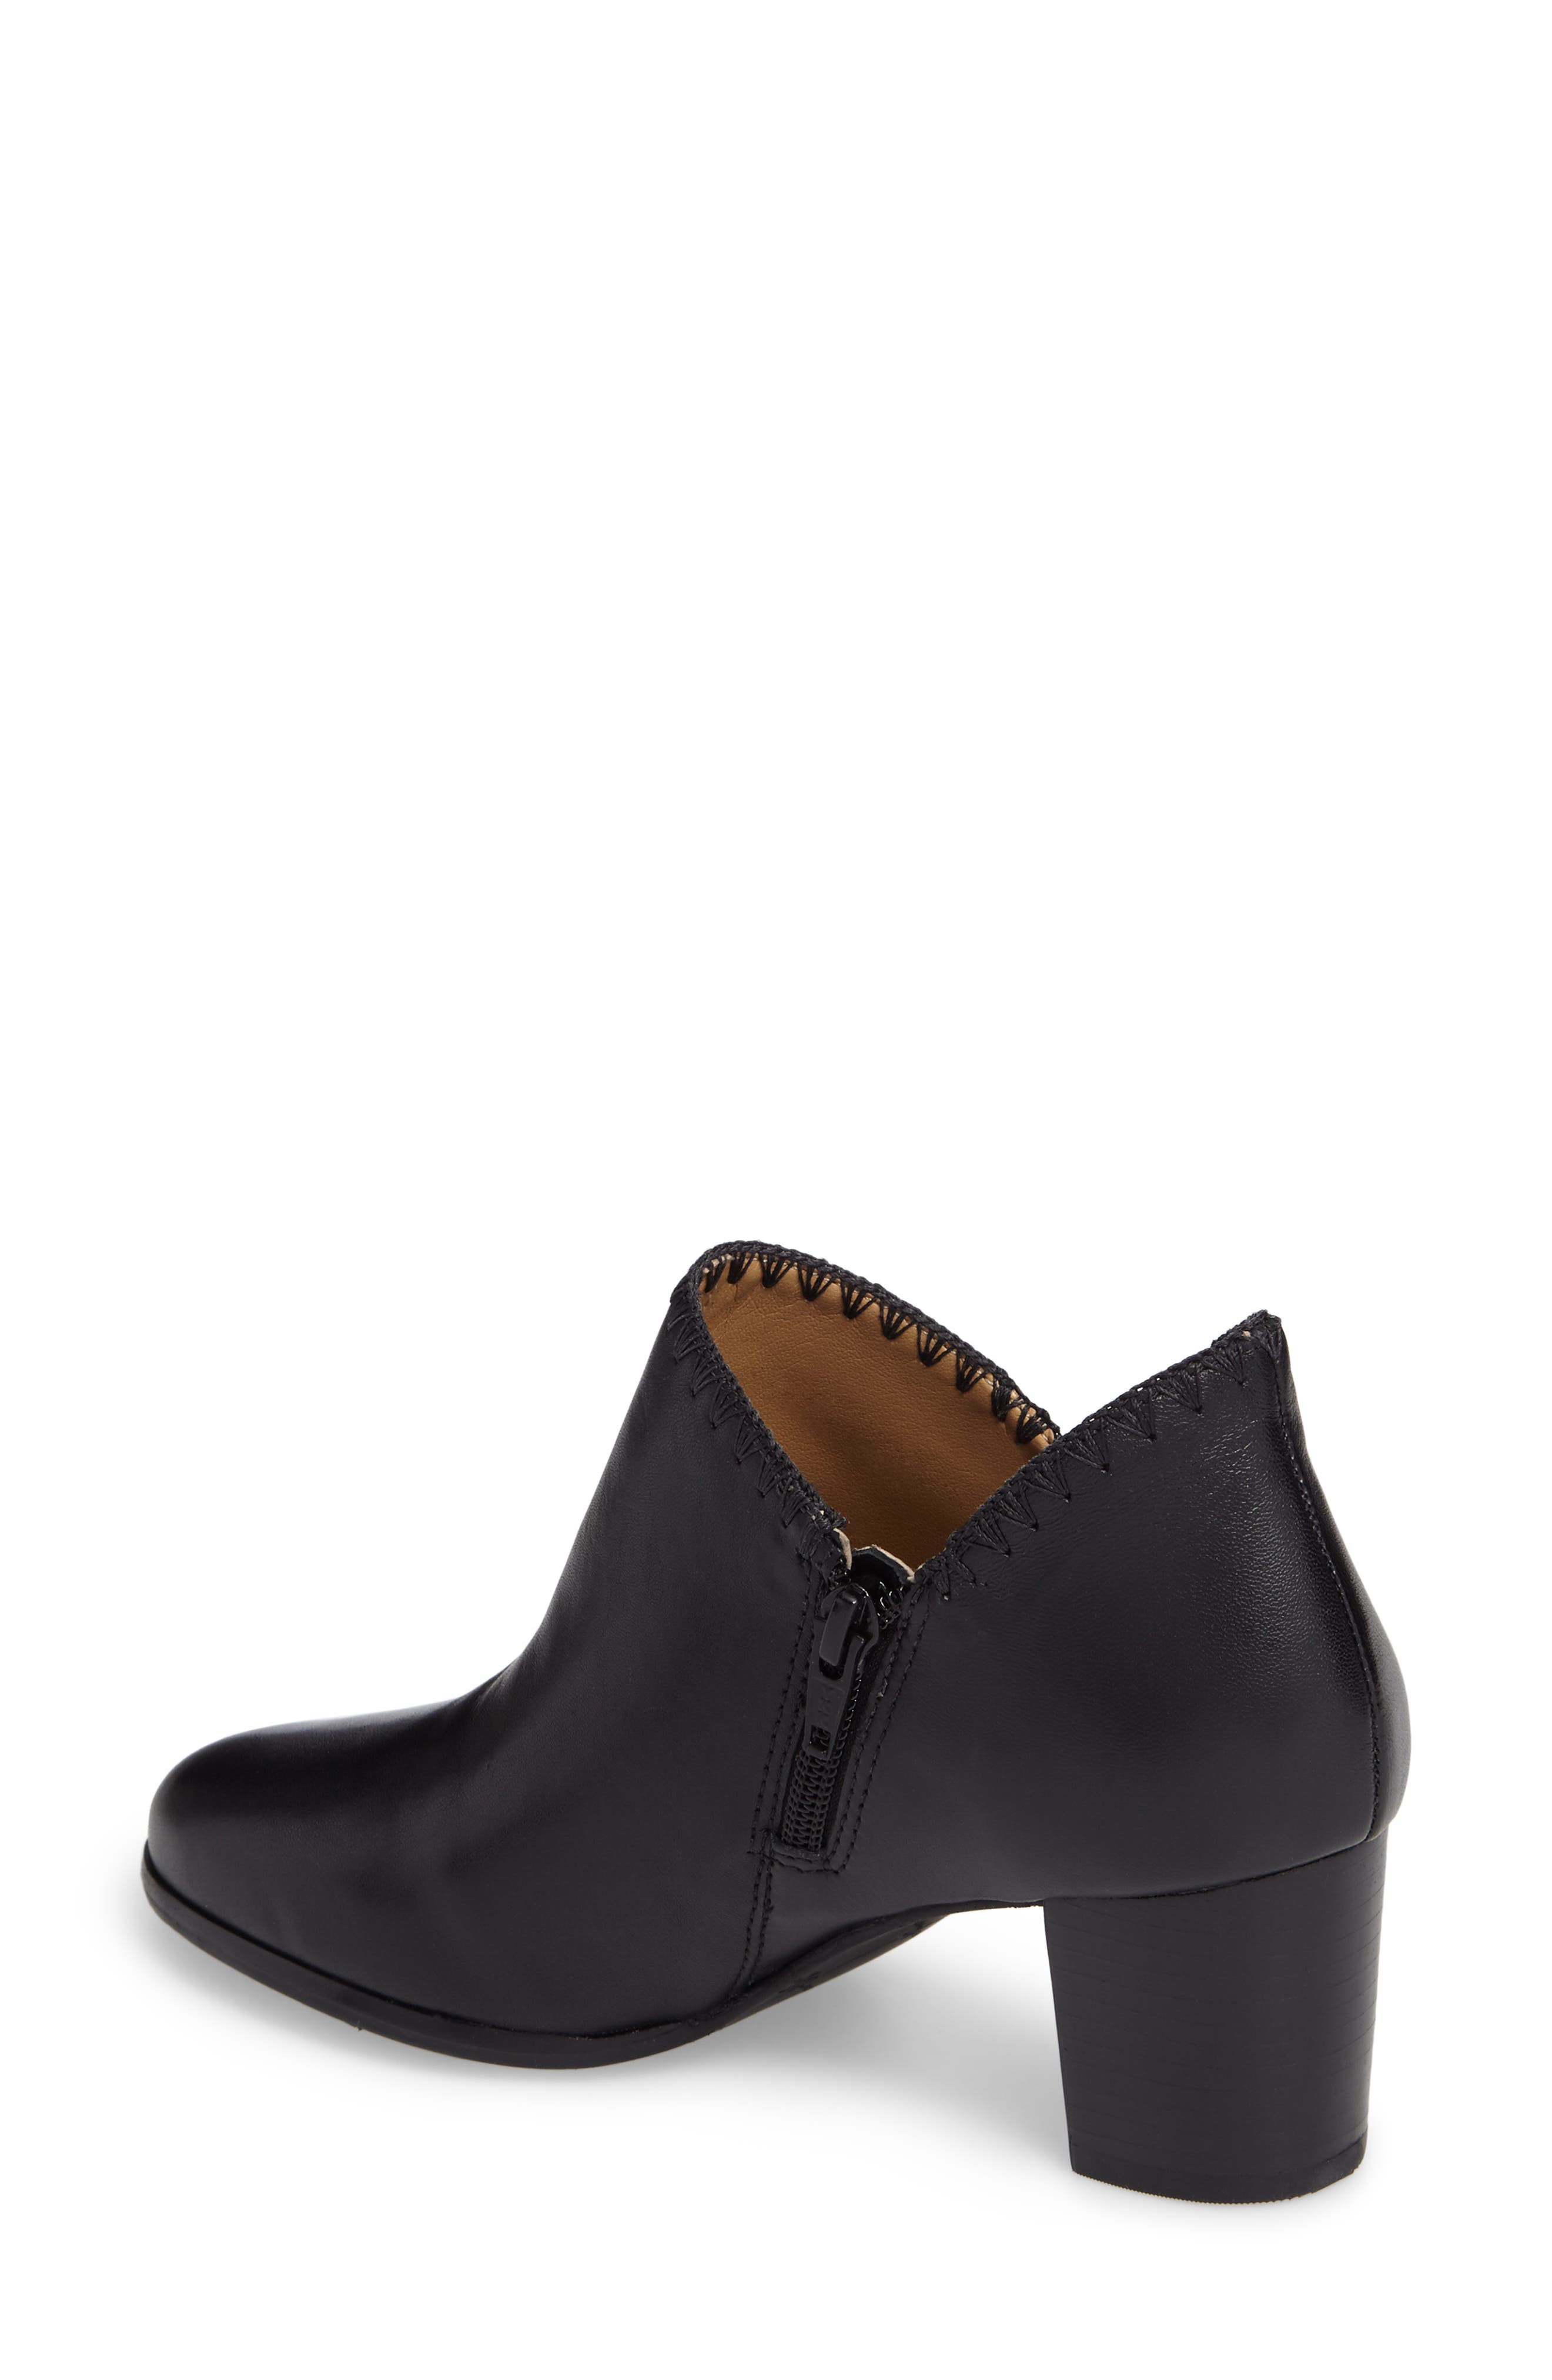 Marlow Bootie,                             Alternate thumbnail 9, color,